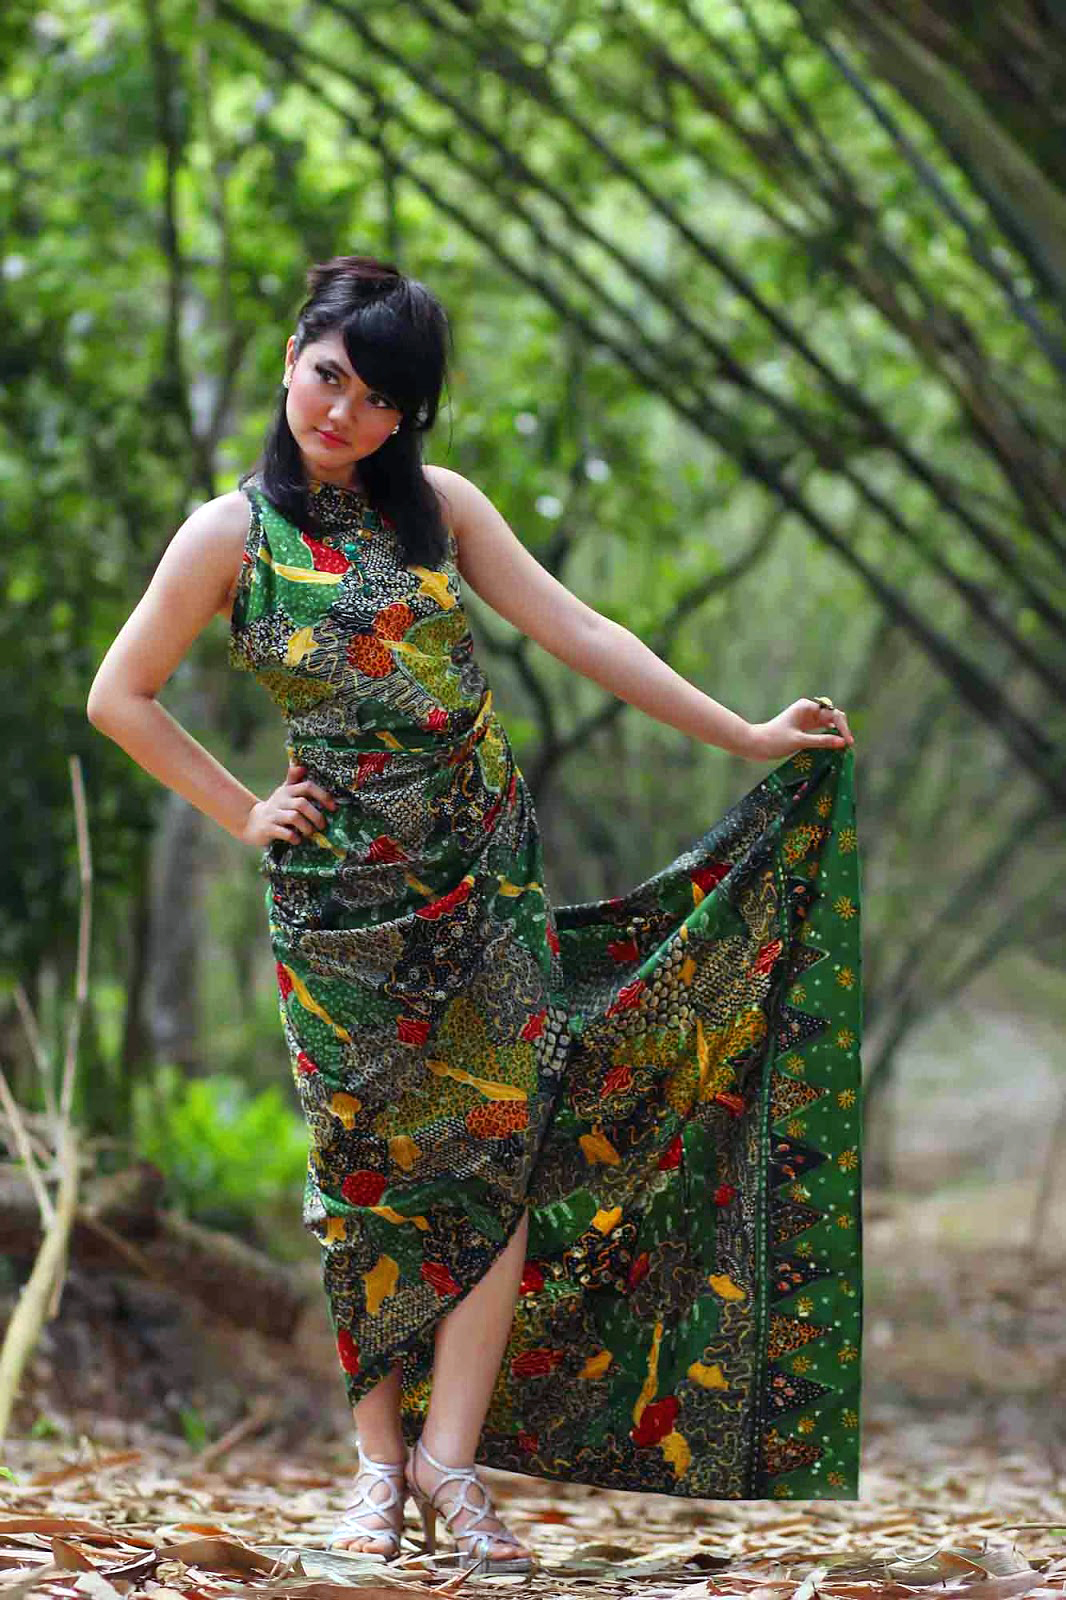 5 Indonesin awesome Batik Dresses a woman should wear 5 Indonesin awesome Batik Dress circle yallingup Indonesin awesome Batik Dress 60s Indonesin awesome Batik Dress 60s style Indonesin awesome Batik Dress 6pm Indonesin awesome Batik Dress 65 degree weather Indonesin awesome Batik Dress 6 letters Indonesin awesome Batik Dress 60's theme party Indonesin awesome Batik Dress 69